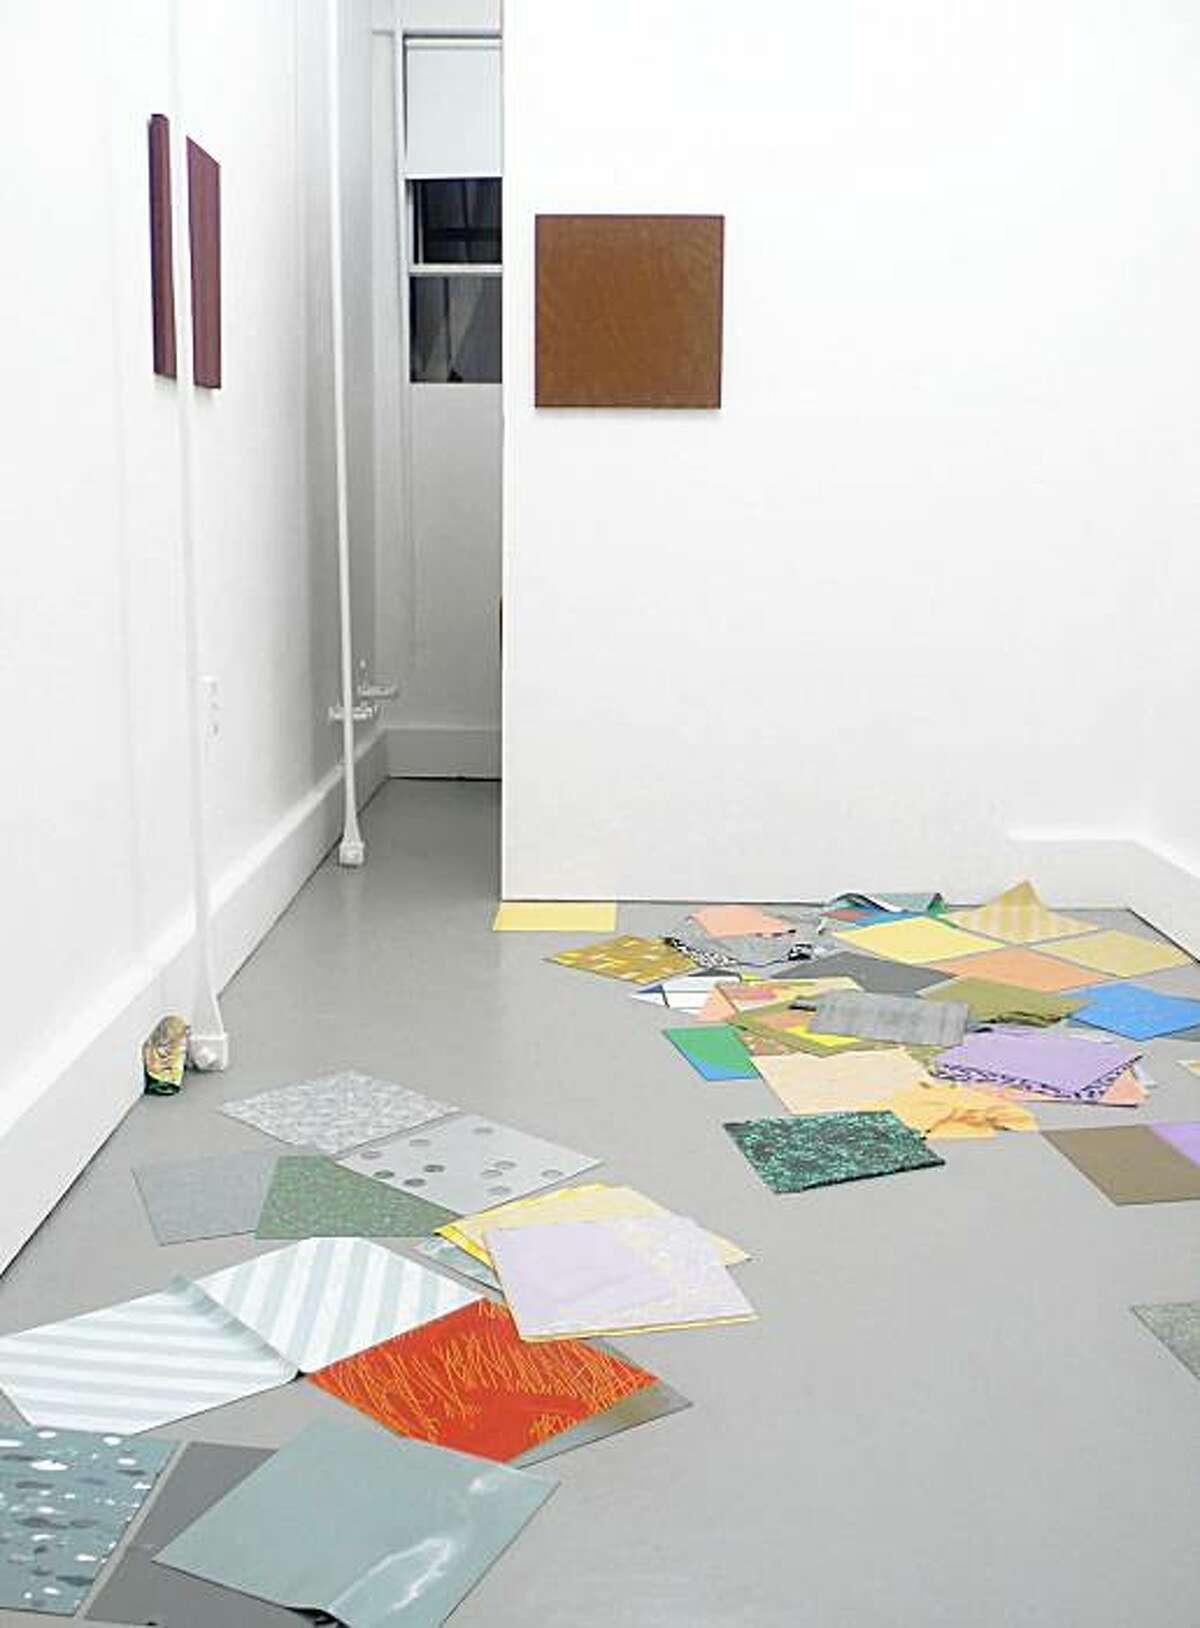 2009 installation of untitled poured latex floor pieces and suede